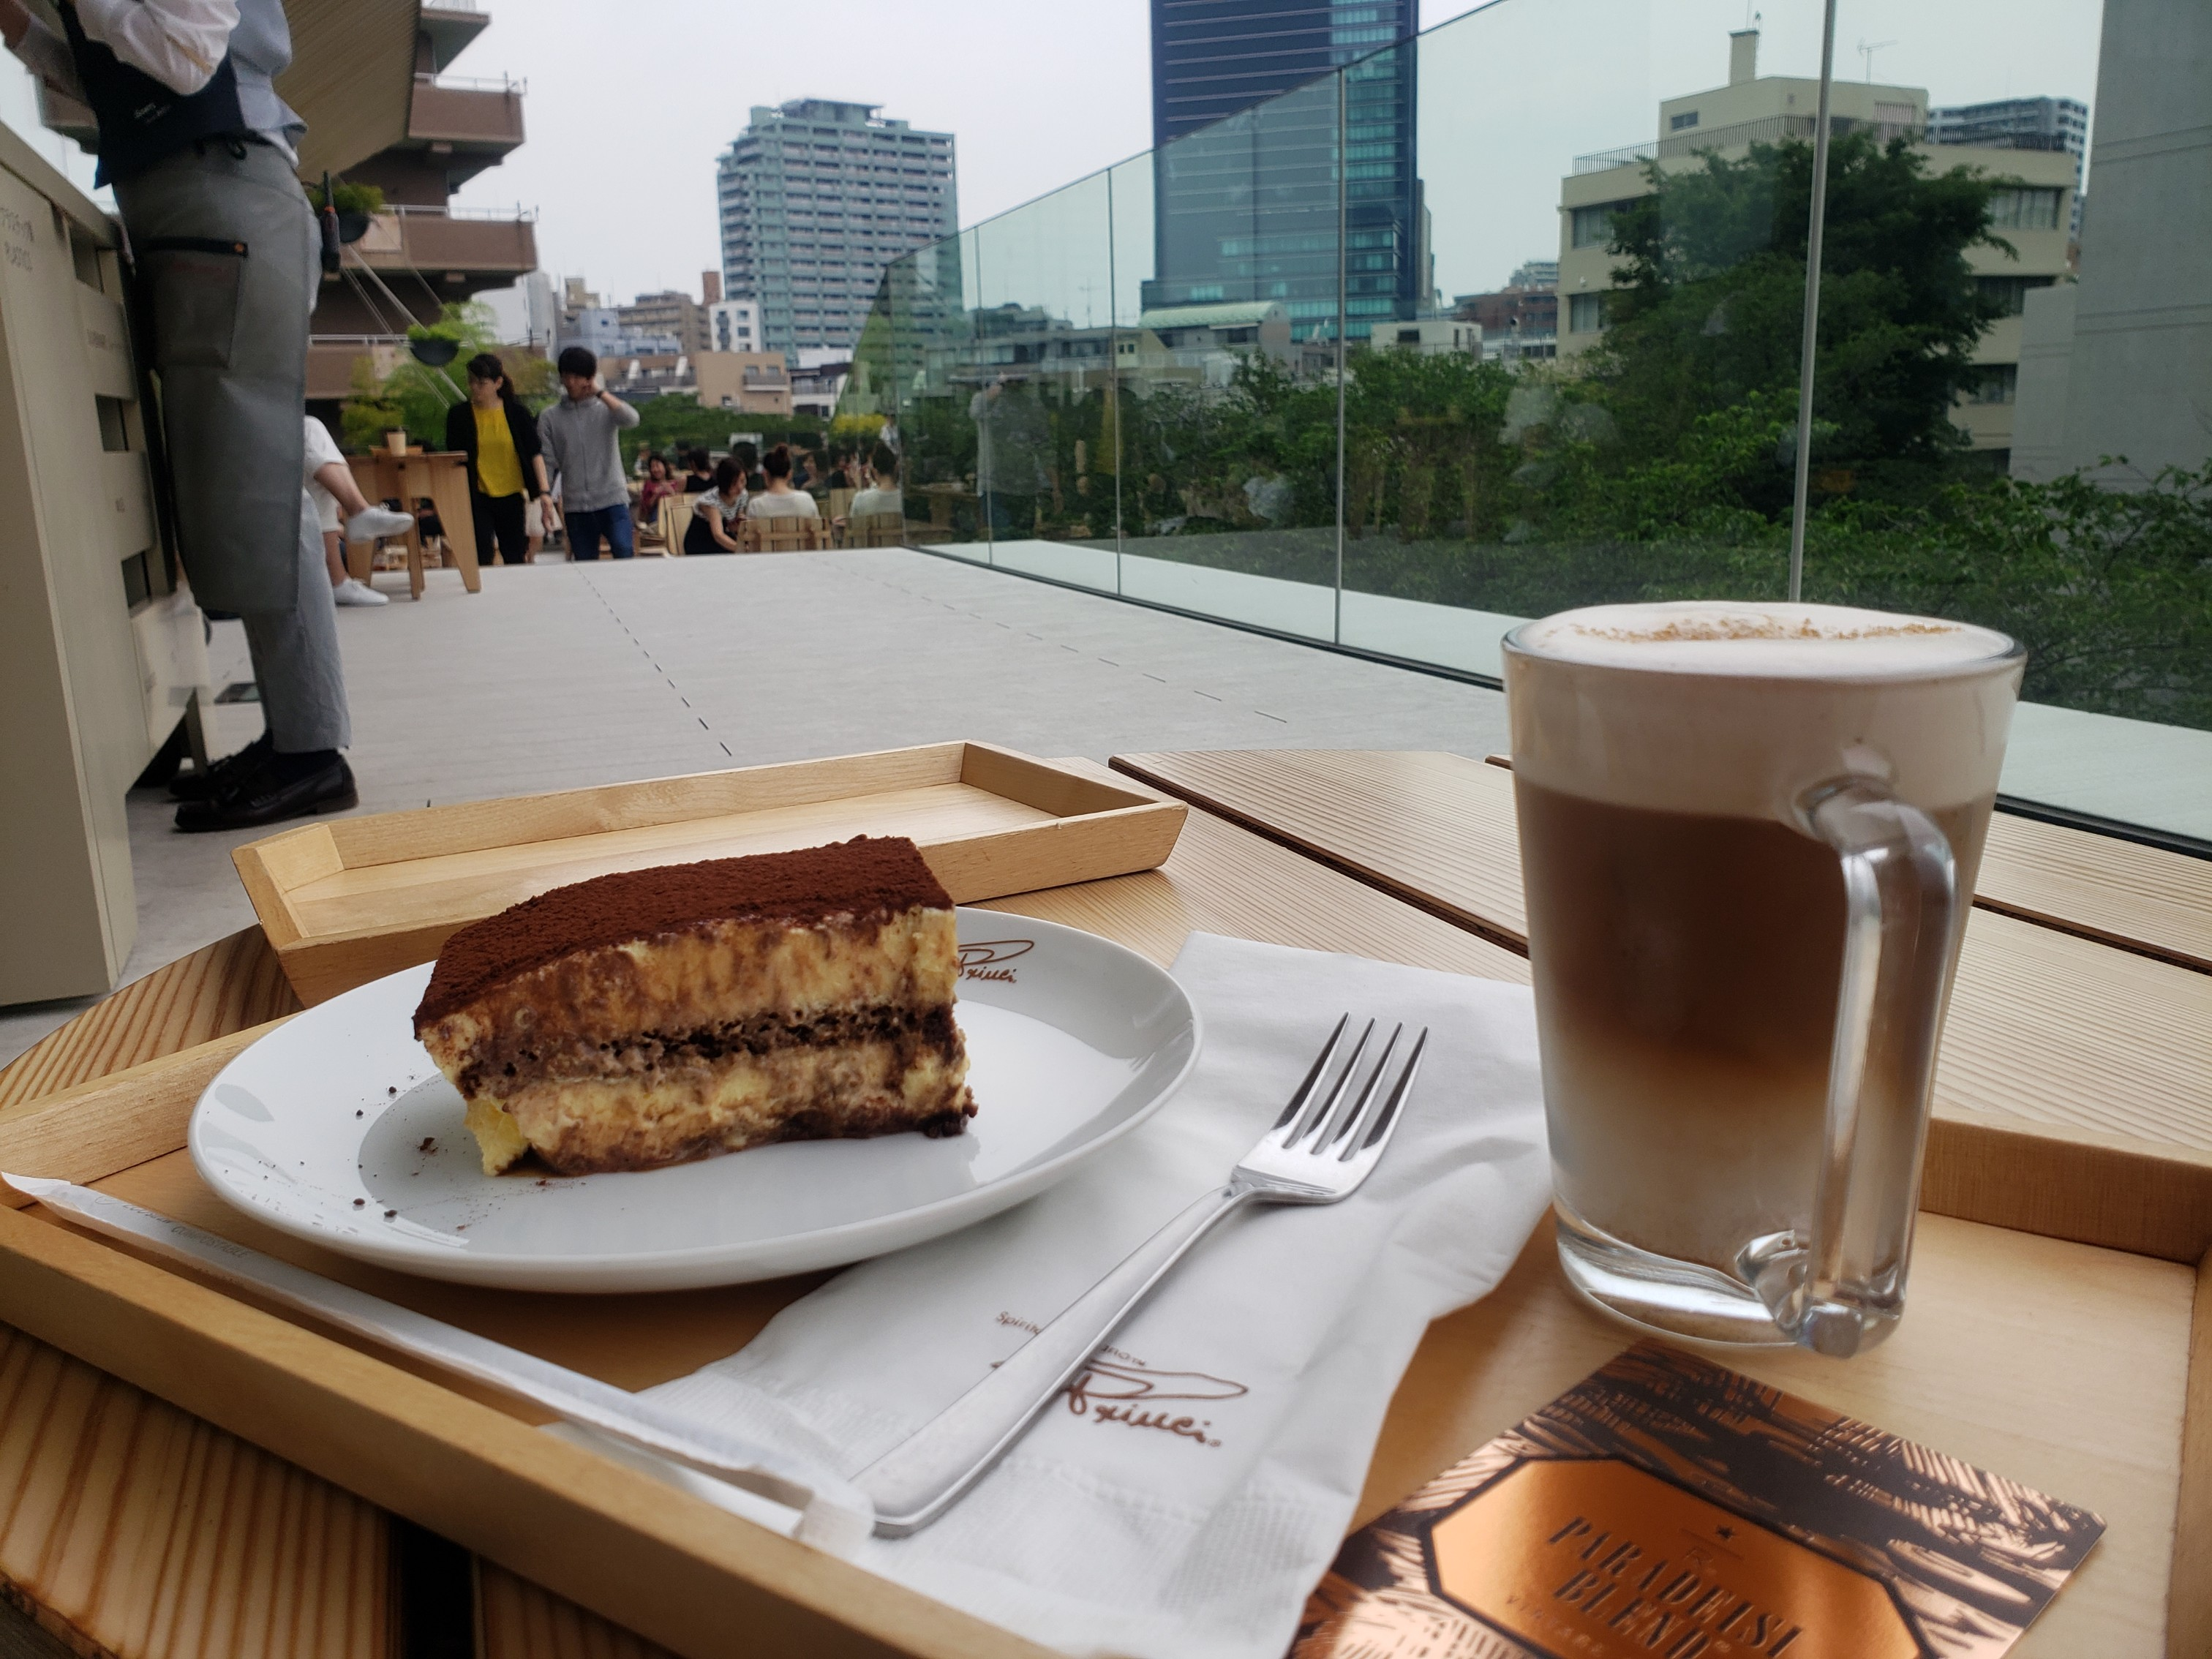 【STARBUCK RESERVE ROASTERY TOKYO】は、カフェテーマパーク☆第2段_3